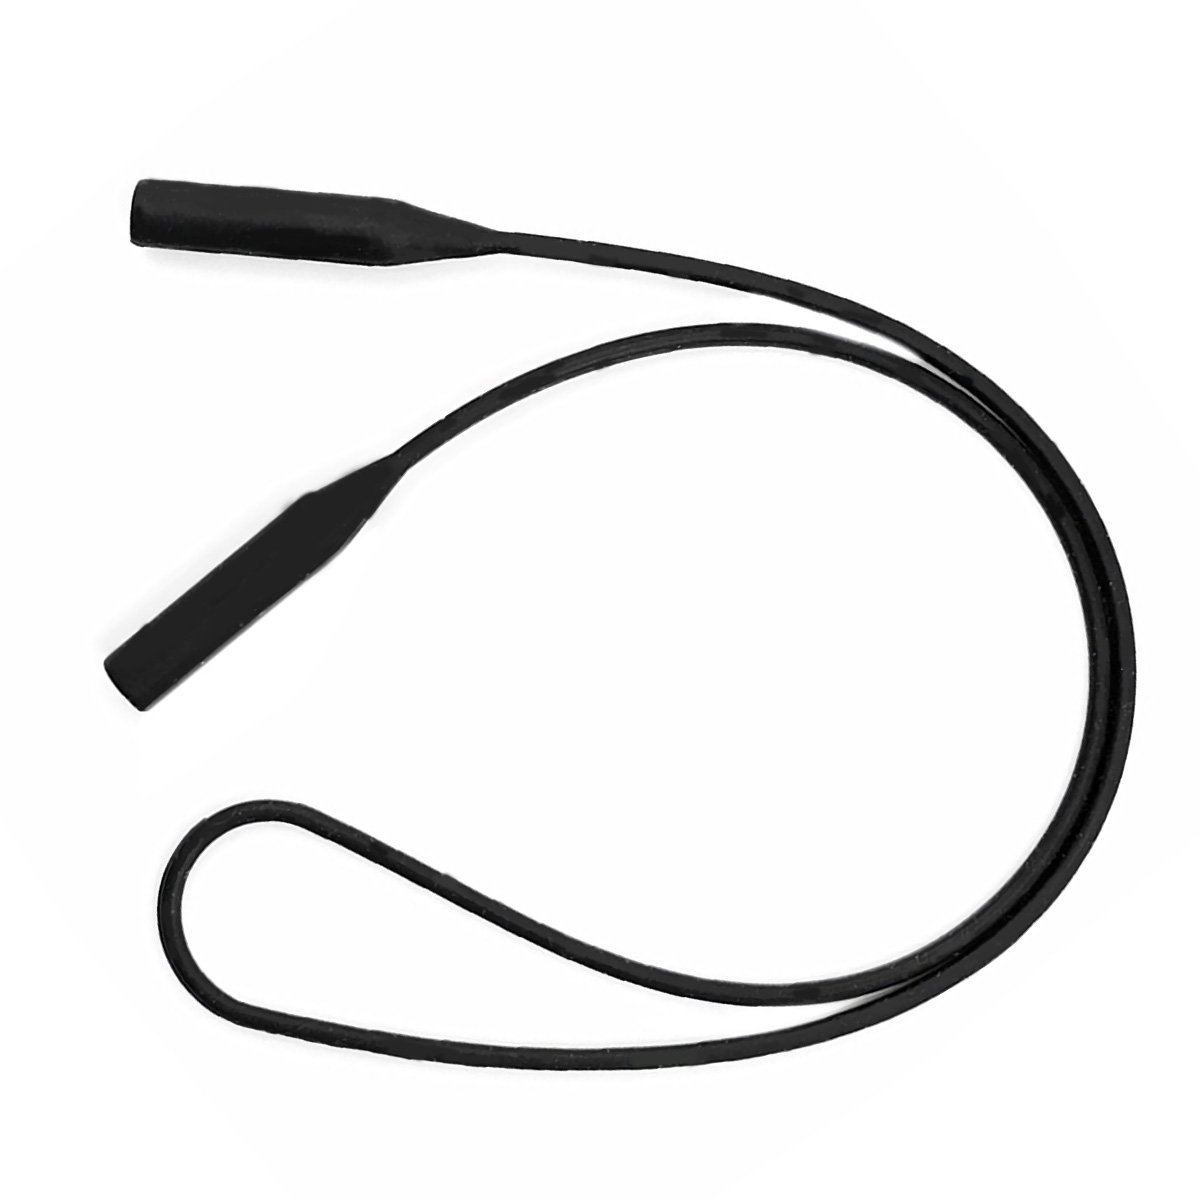 Eyeglass Cord Silicone Eyewear Retainer Holder Sunglass Neck Safety Strap Rope Cord for Adult and Kid